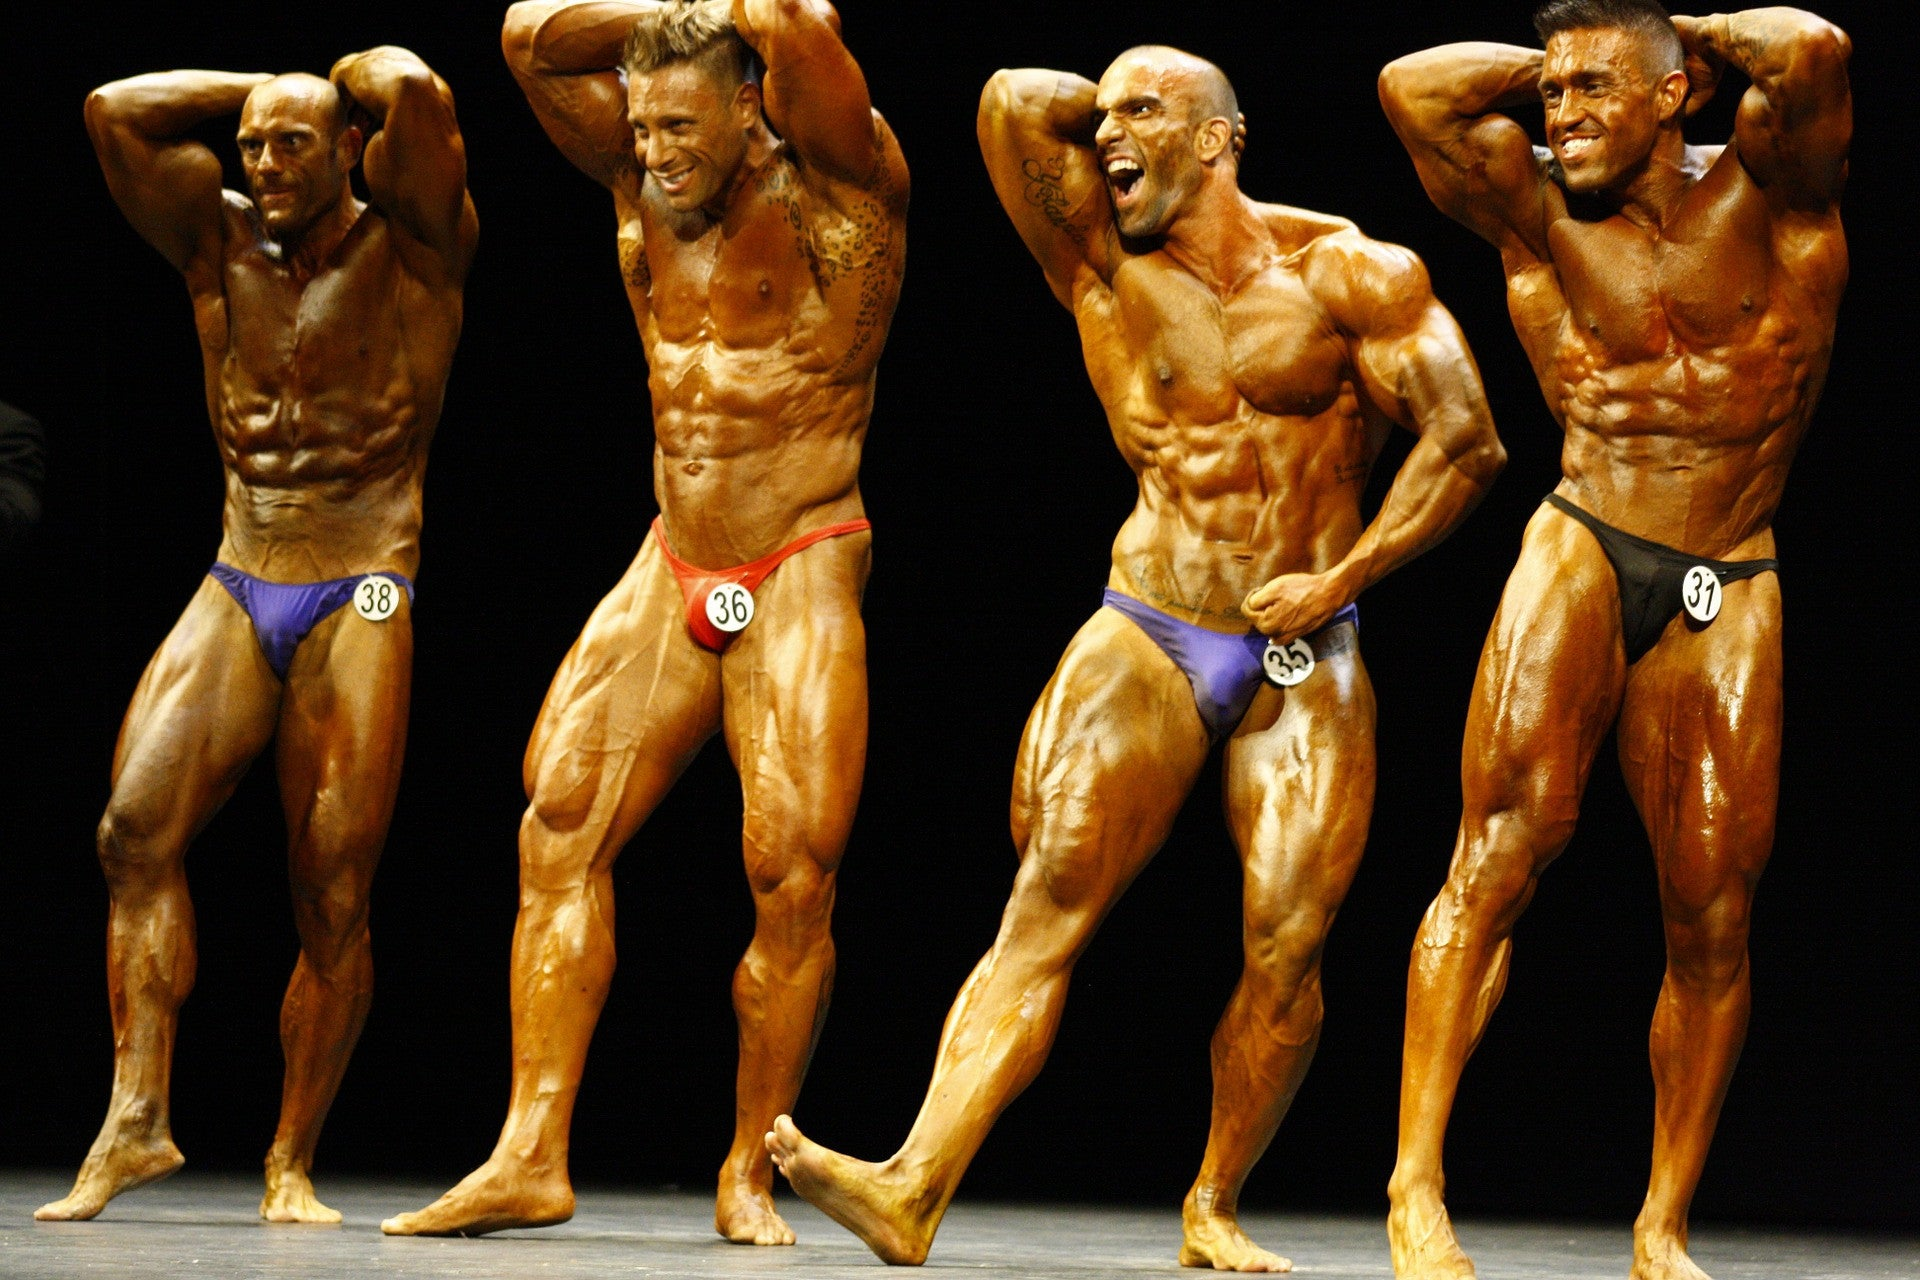 5 Facts You Didn't Know About Mr. Olympia Bodybuilding